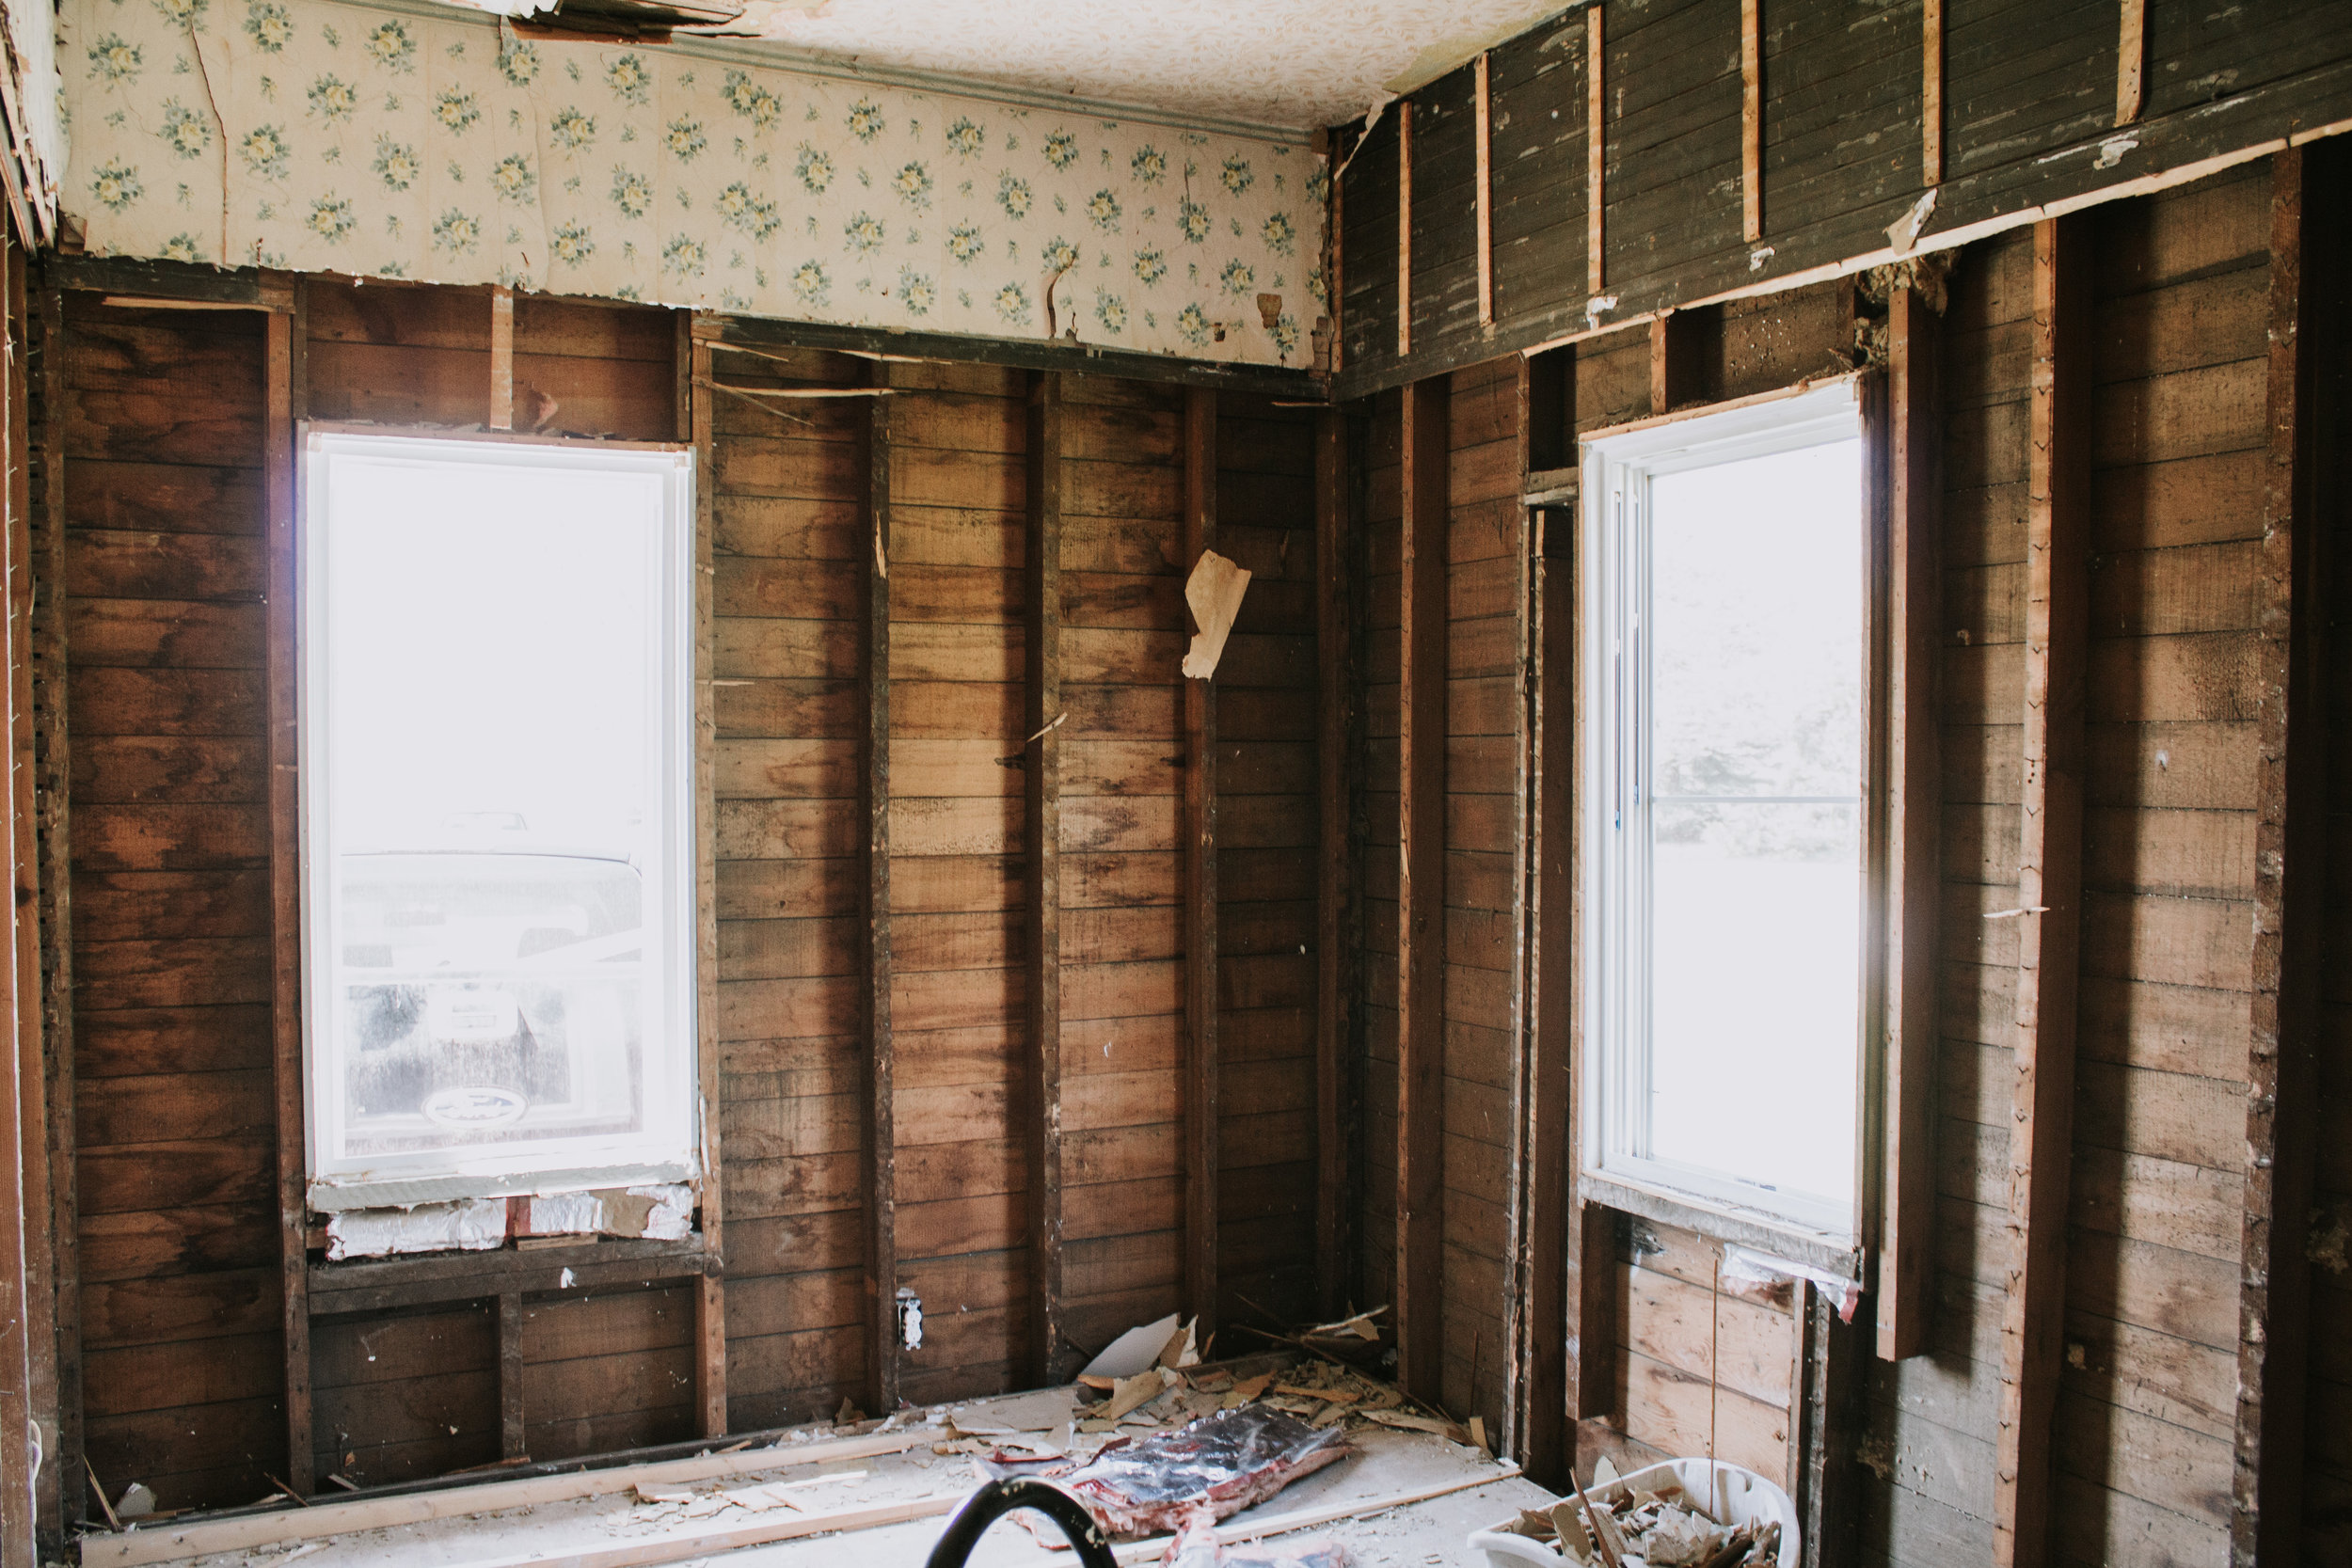 Update on our guest room renovation - the massive remodel has begun